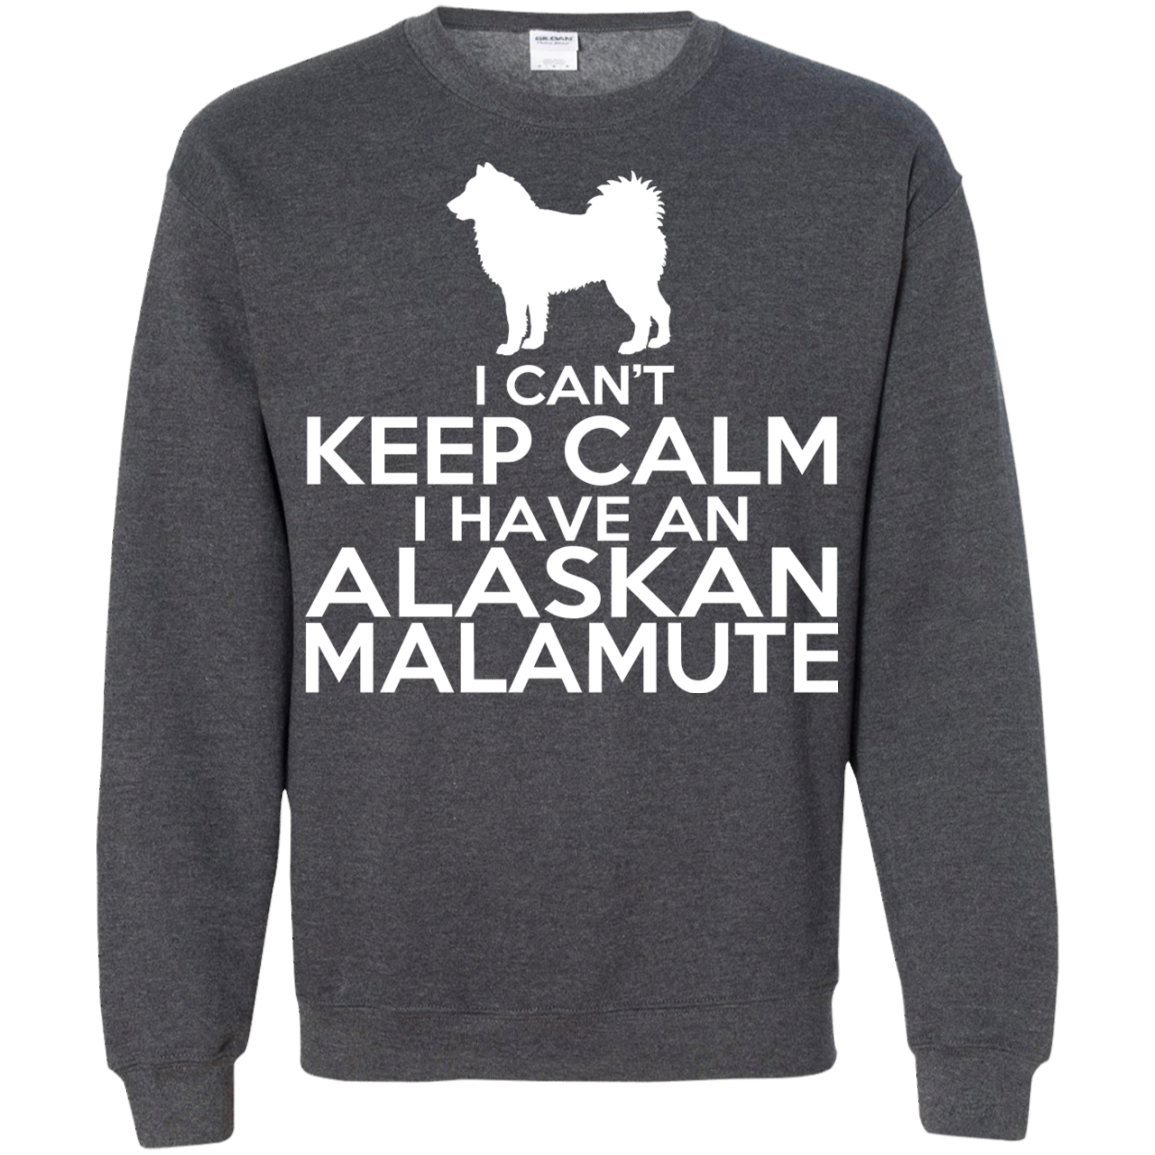 I Cant Keep Calm I Have An Alaskan Malamute Sweatshirts